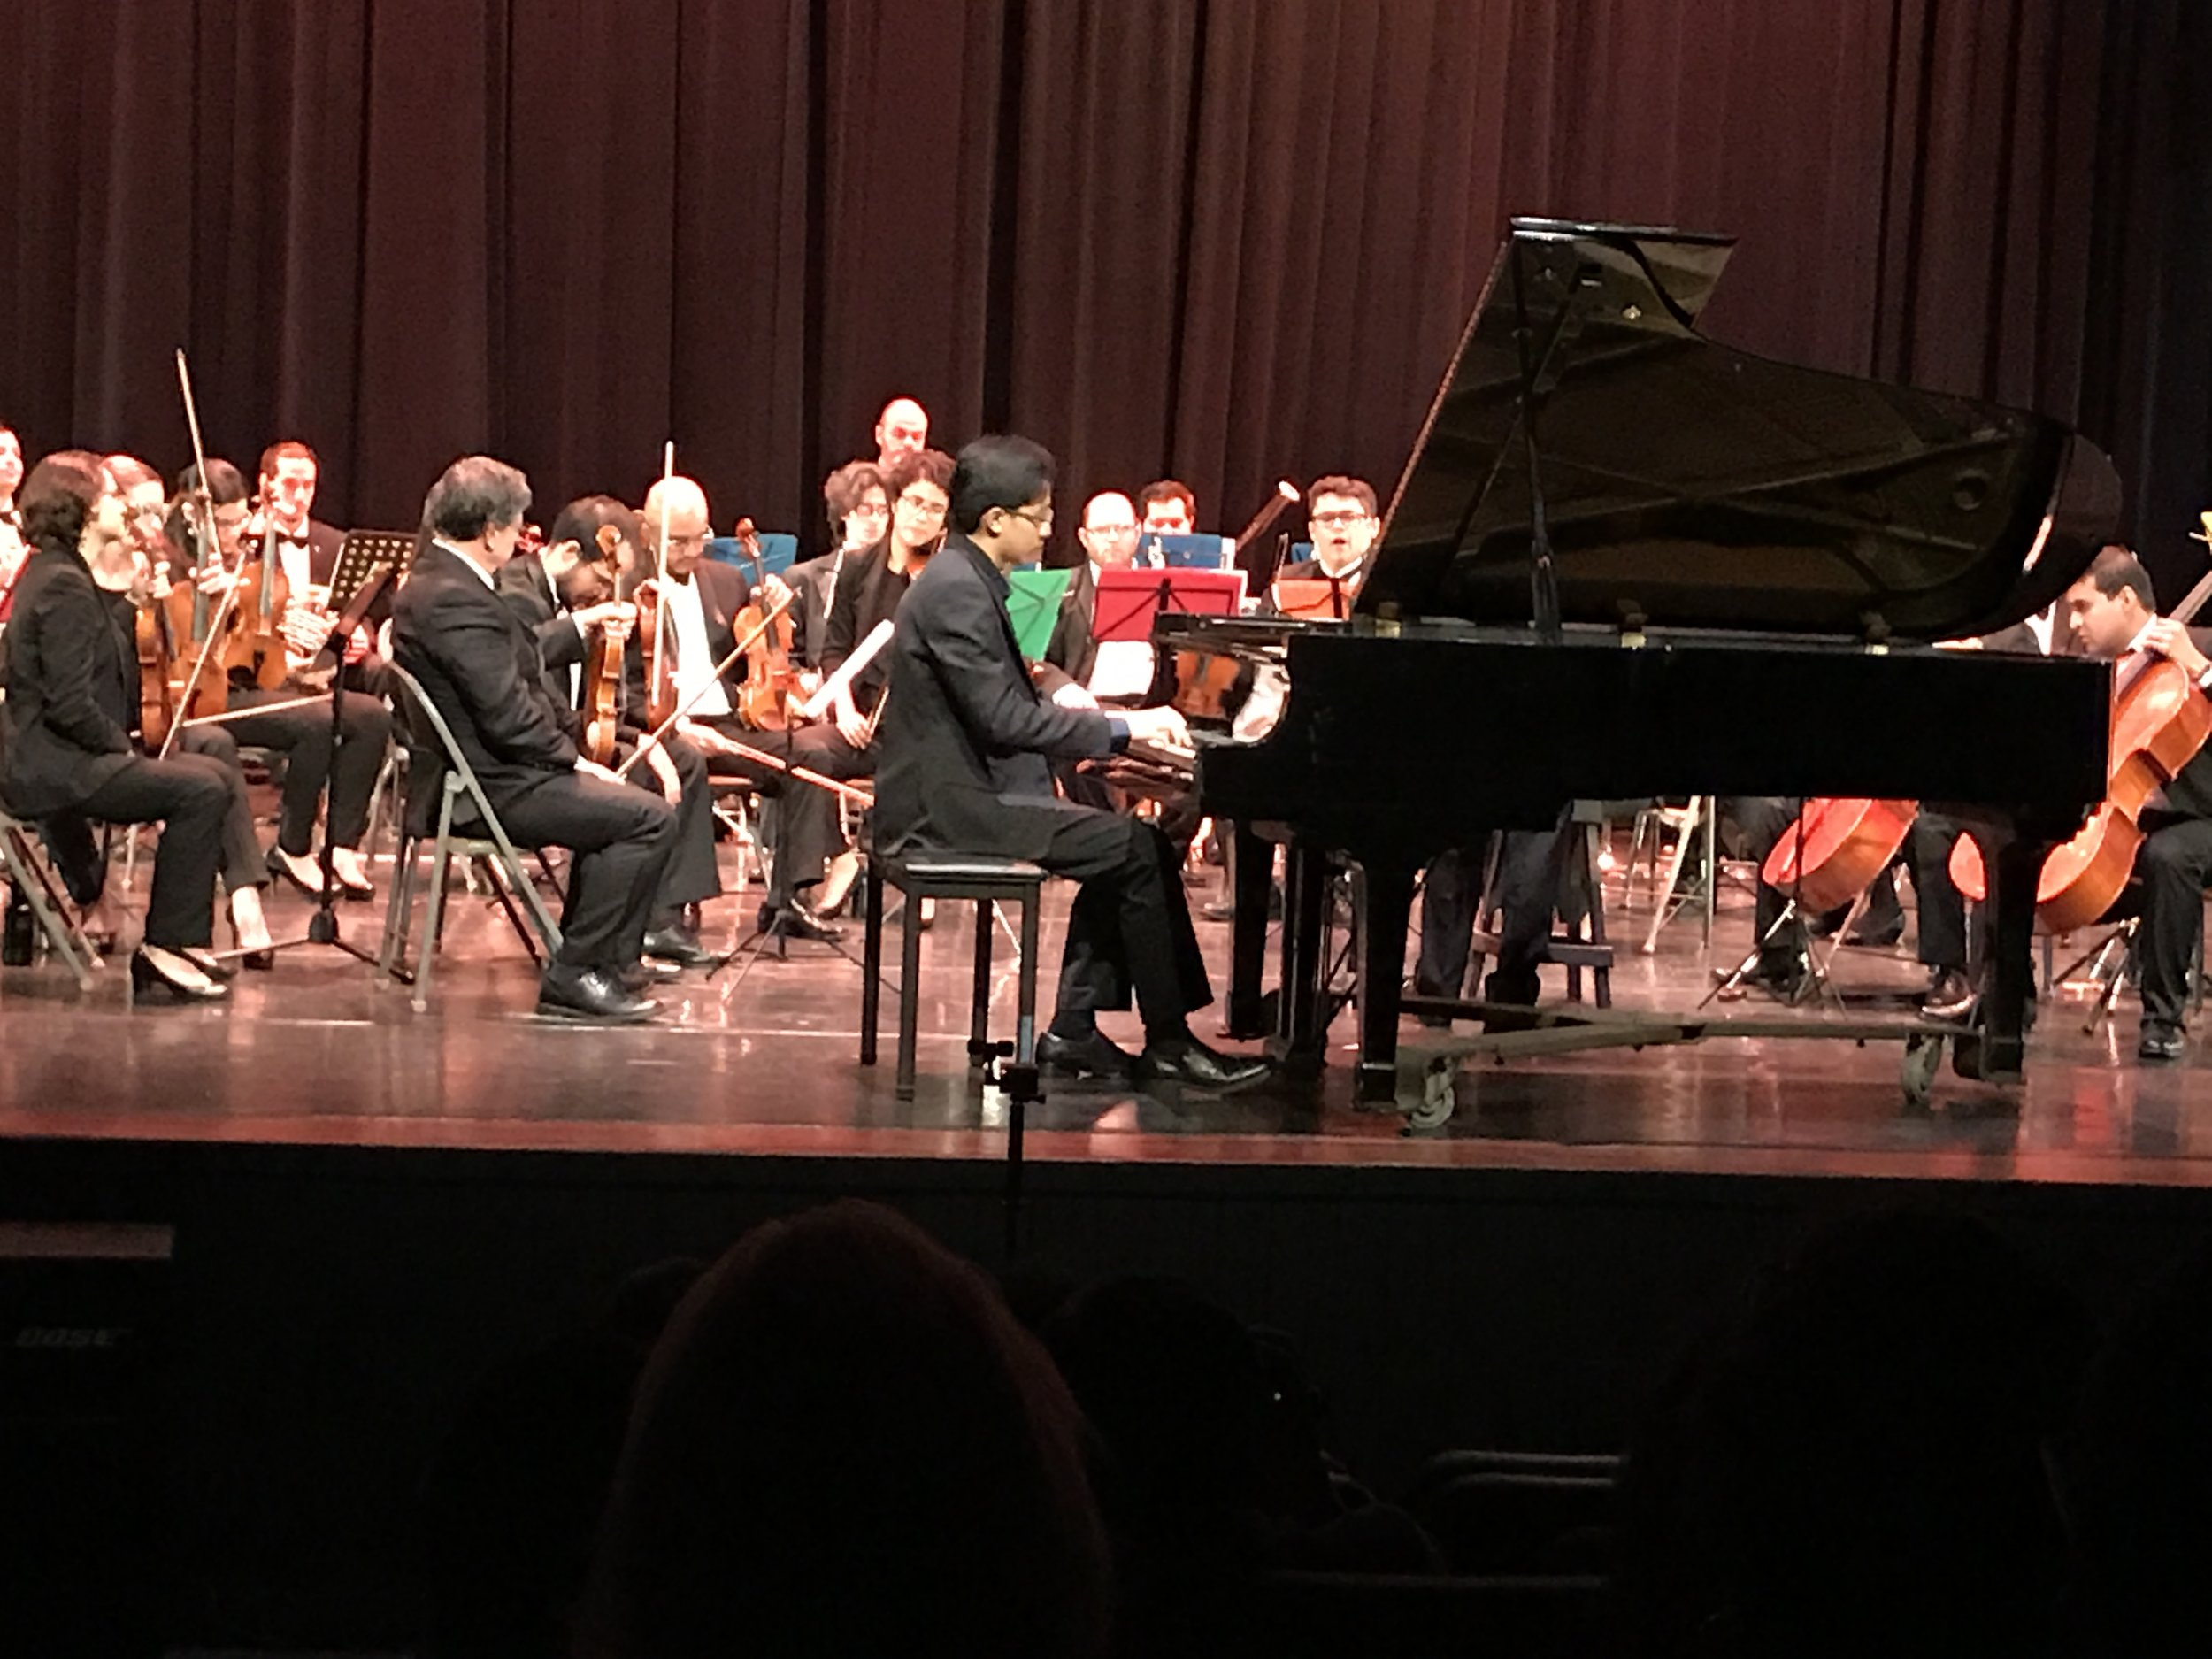 Fong Kai De performing with the National Symphony Orchestra of Costa Rica